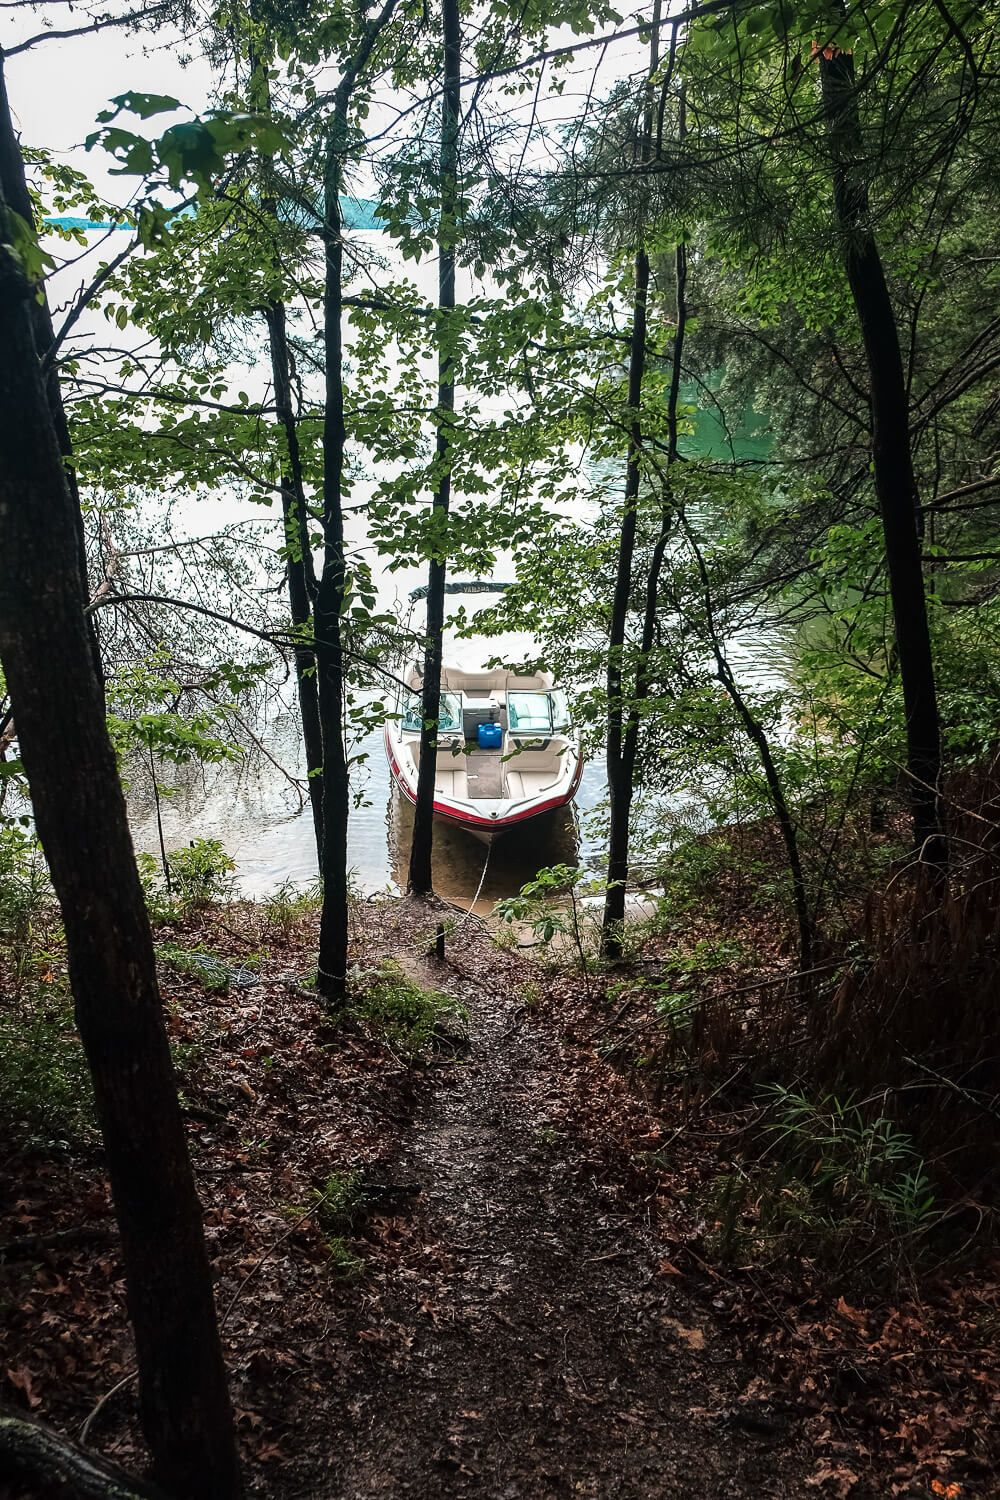 Boat in campsites at lake jocassee